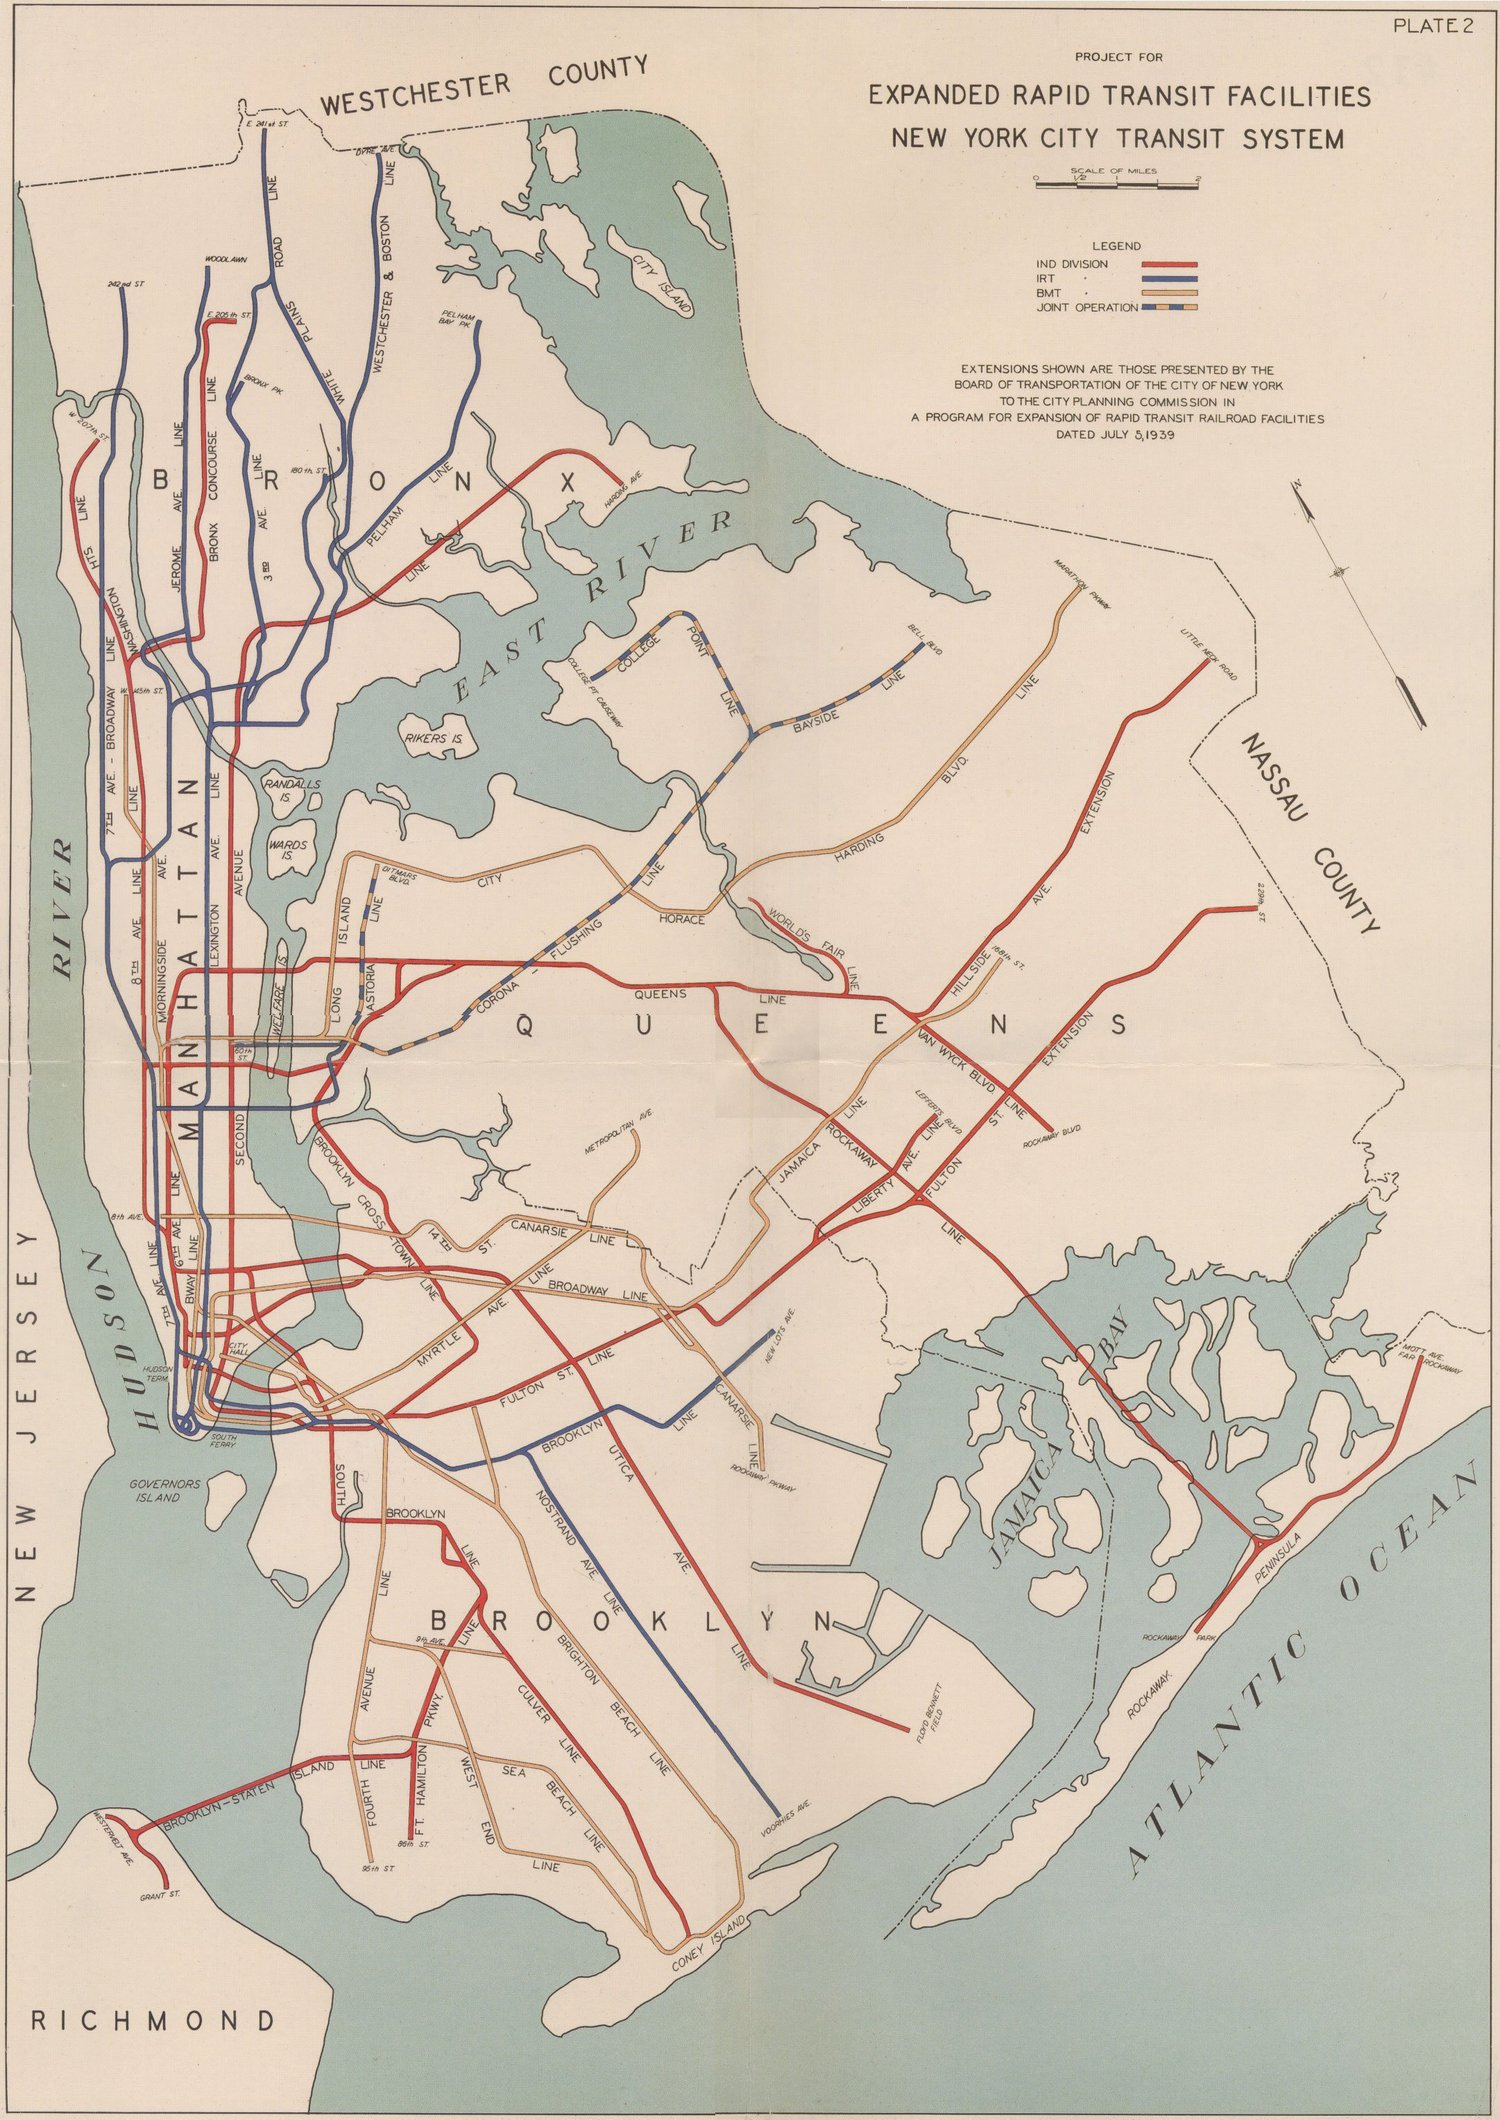 New York City Bus And Subway Map.Vintage Transit Plan Subway Map From 1939 Shows A Different Way To